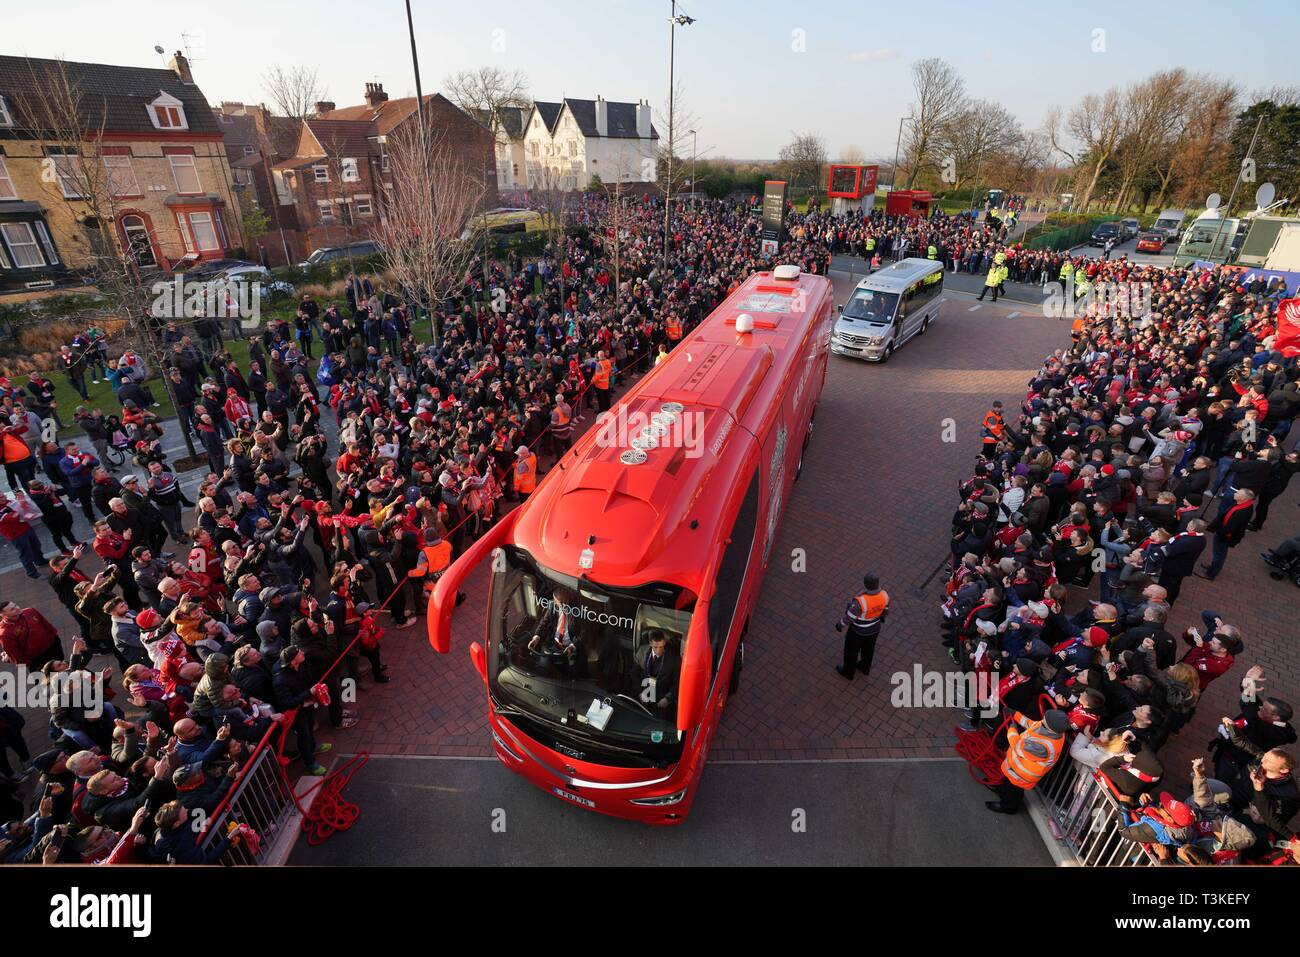 A general view of Anfield, with Liverpool coach arriving with fans